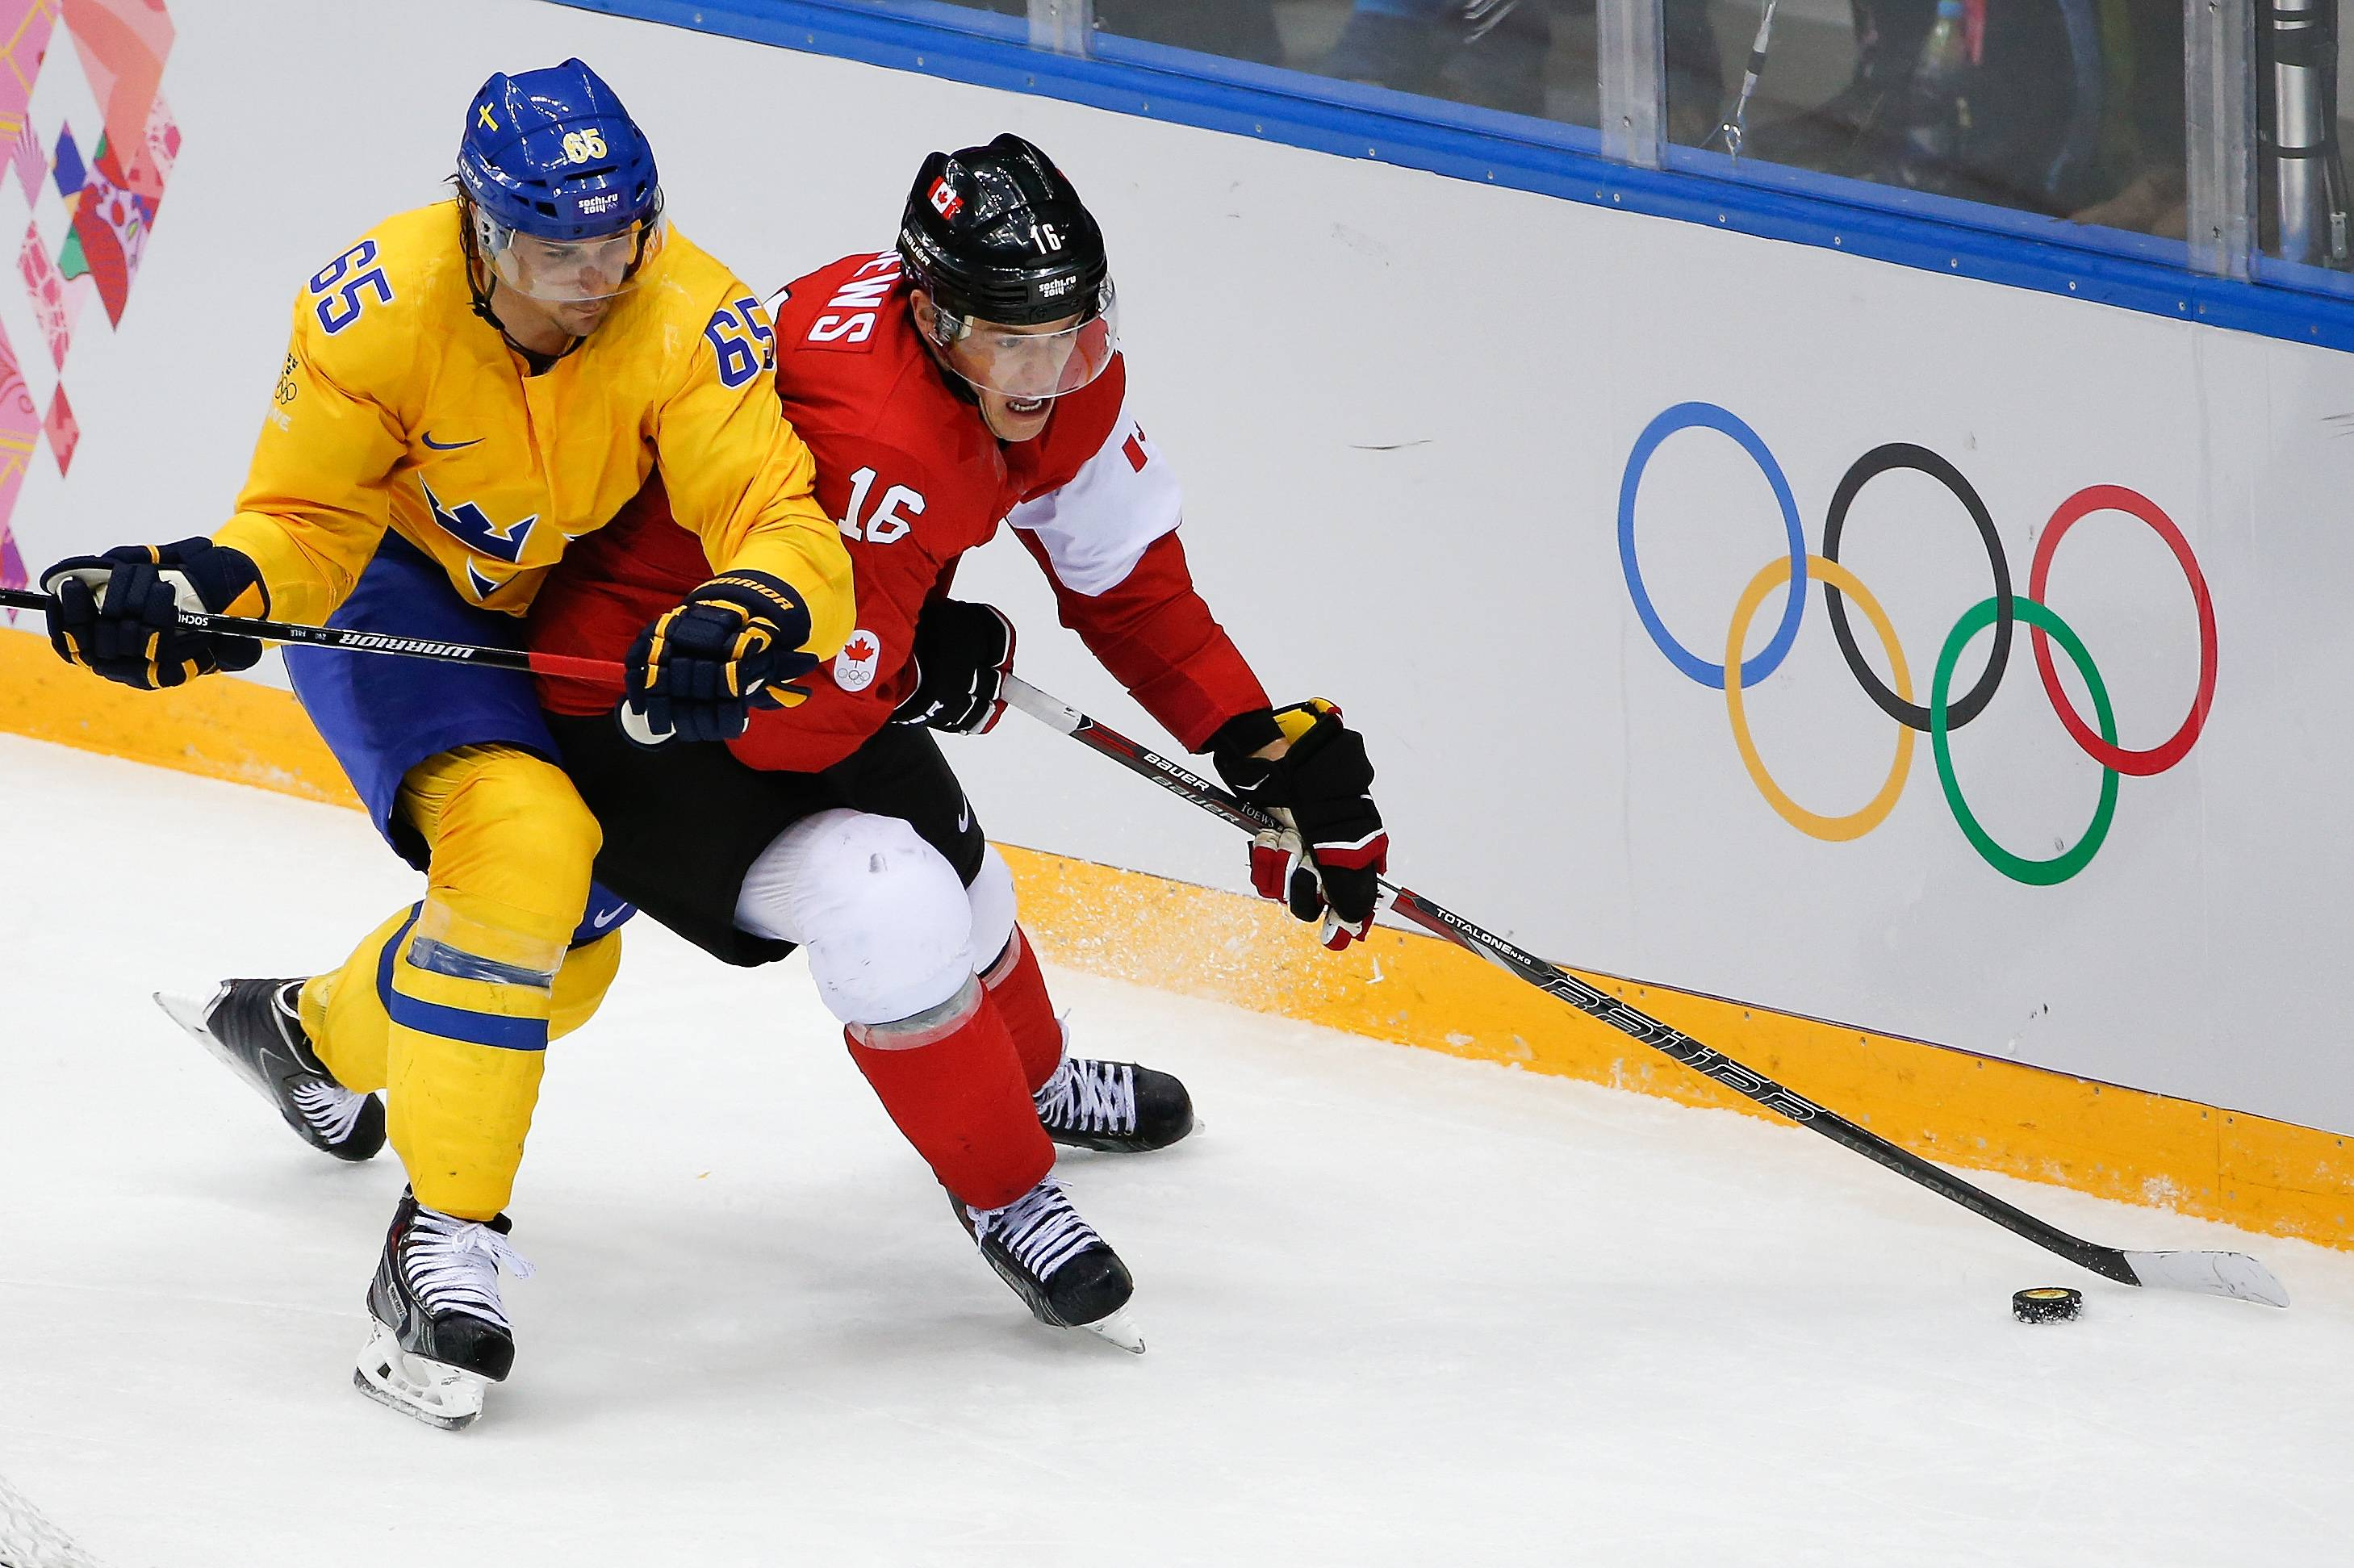 Jonathan Toews of Canada (16) tales control of the puck under pressure from Erik Karlsson of Sweden (65) during the third period of the men's gold medal ice hockey game at the 2014 Winter Olympics, Sunday, Feb. 23, 2014, in Sochi, Russia.